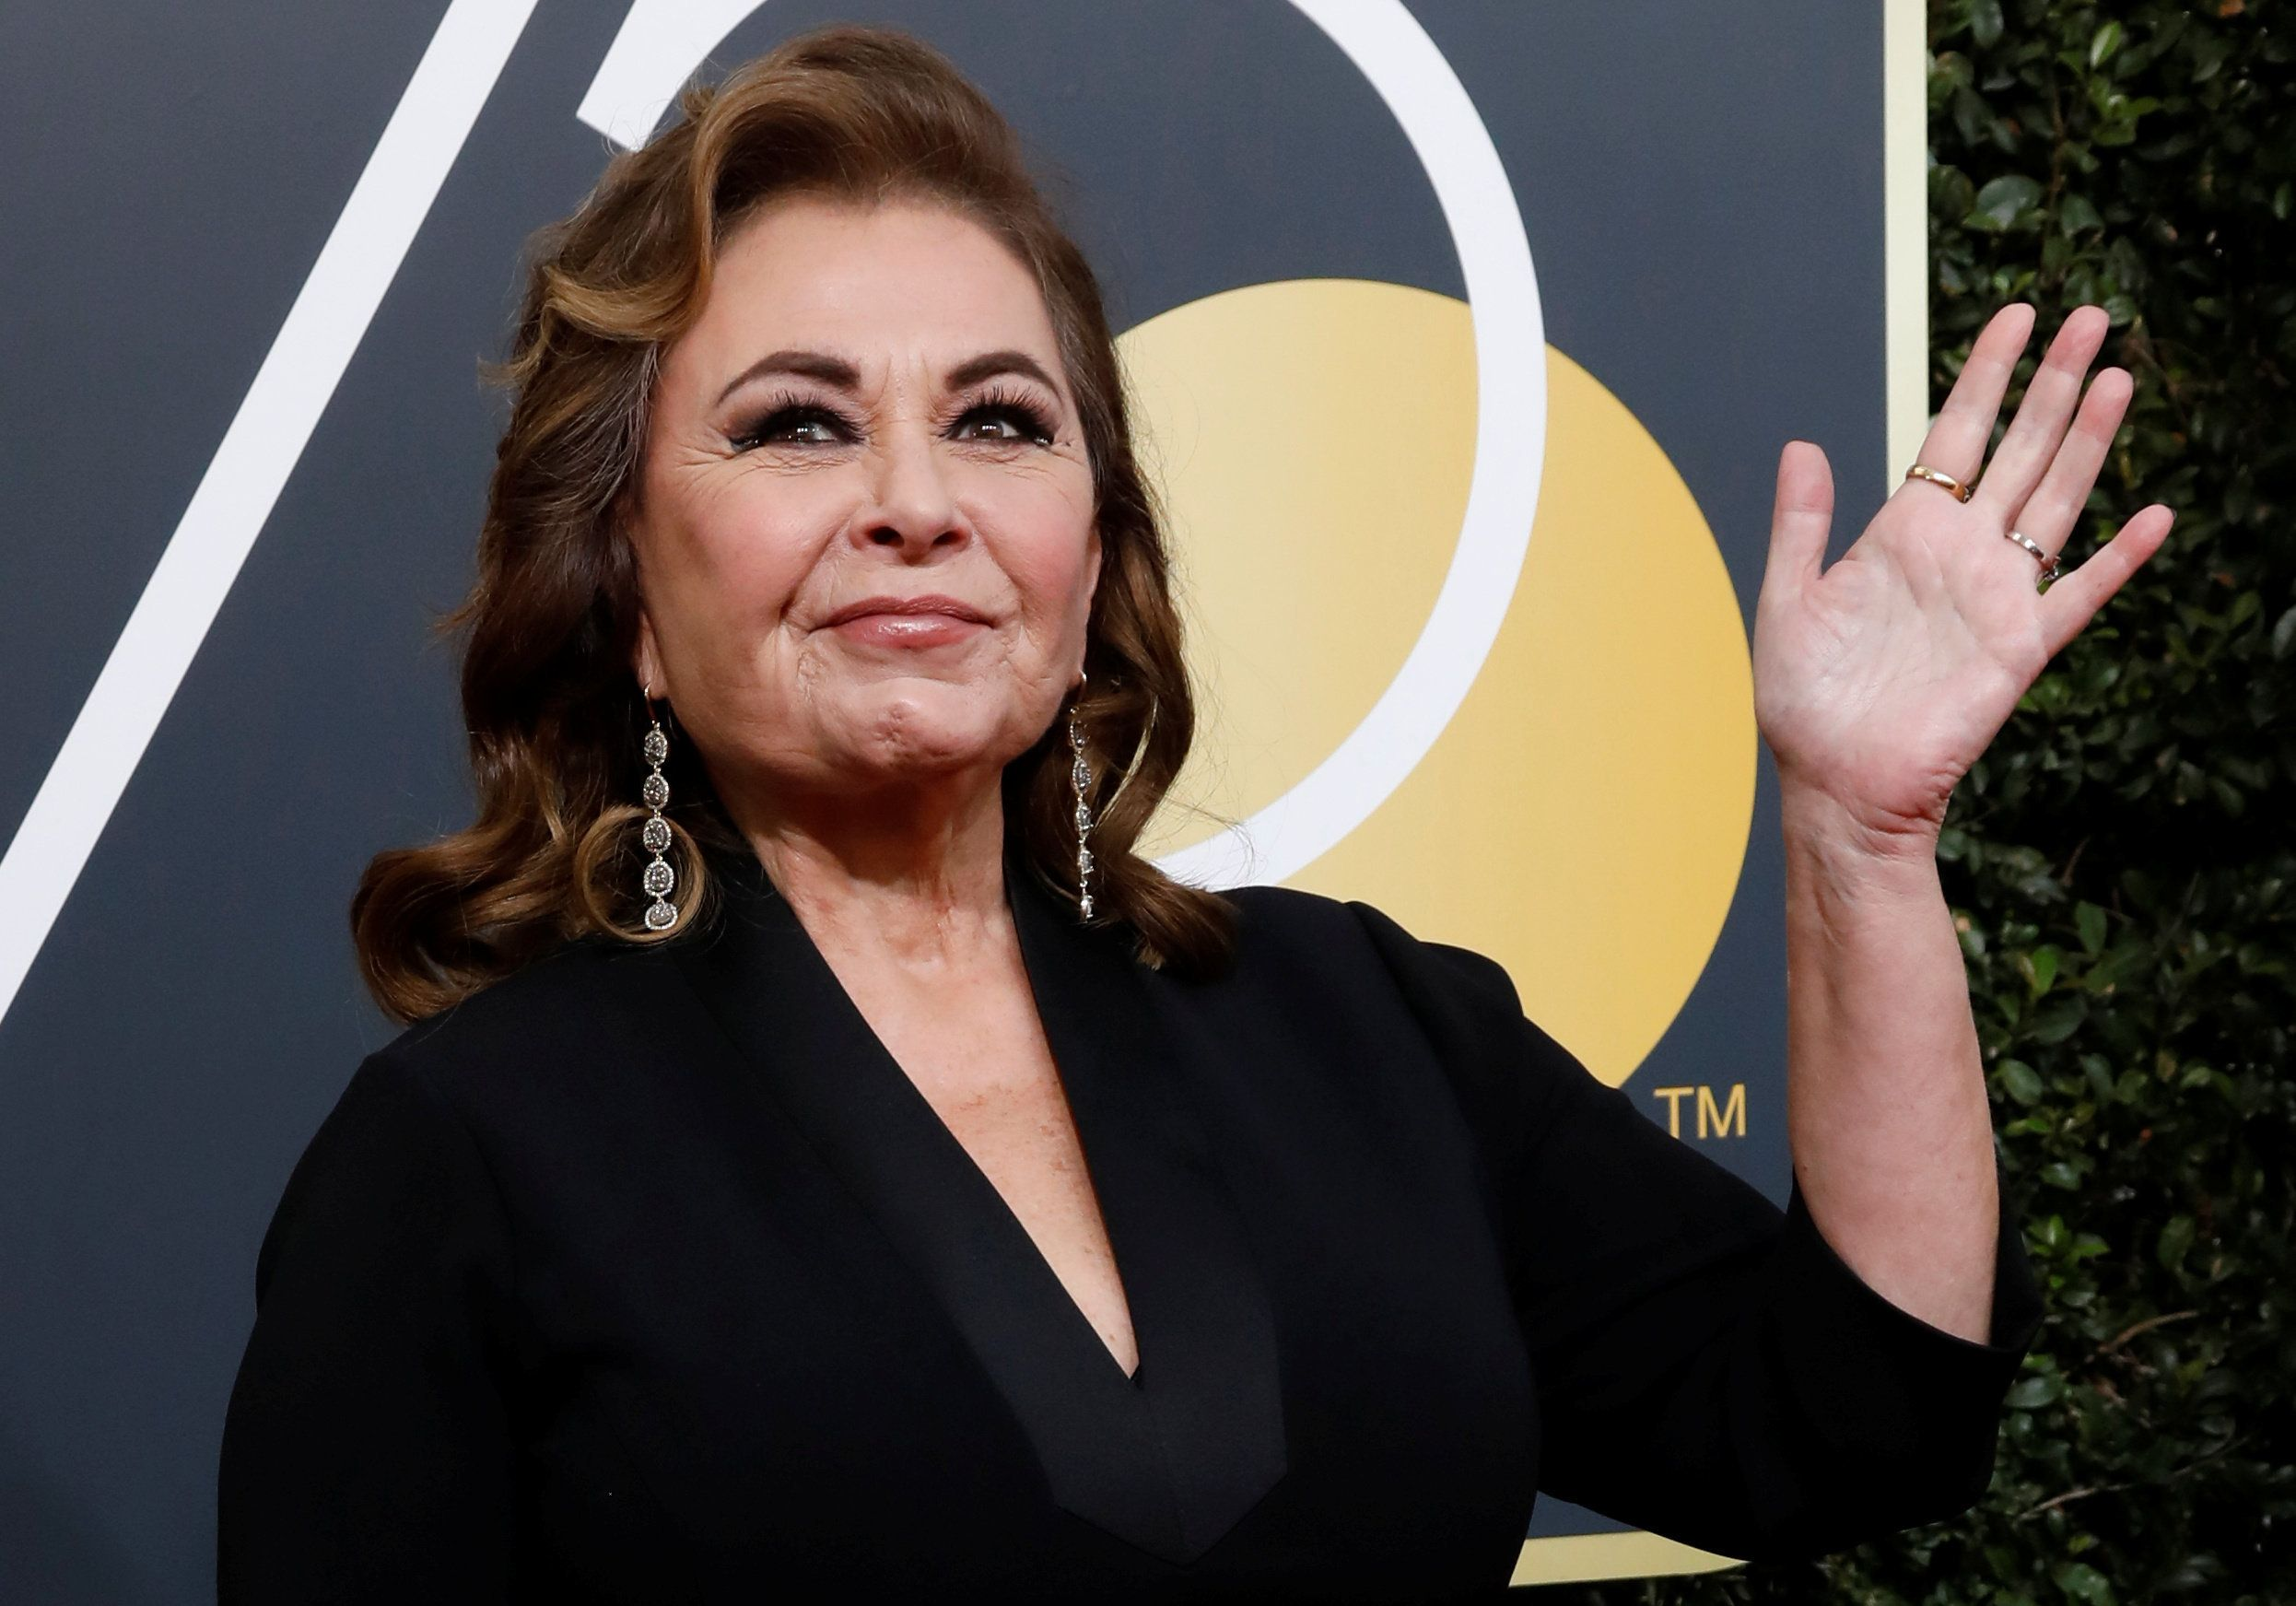 Roseanne Barr apologizes to George Soros